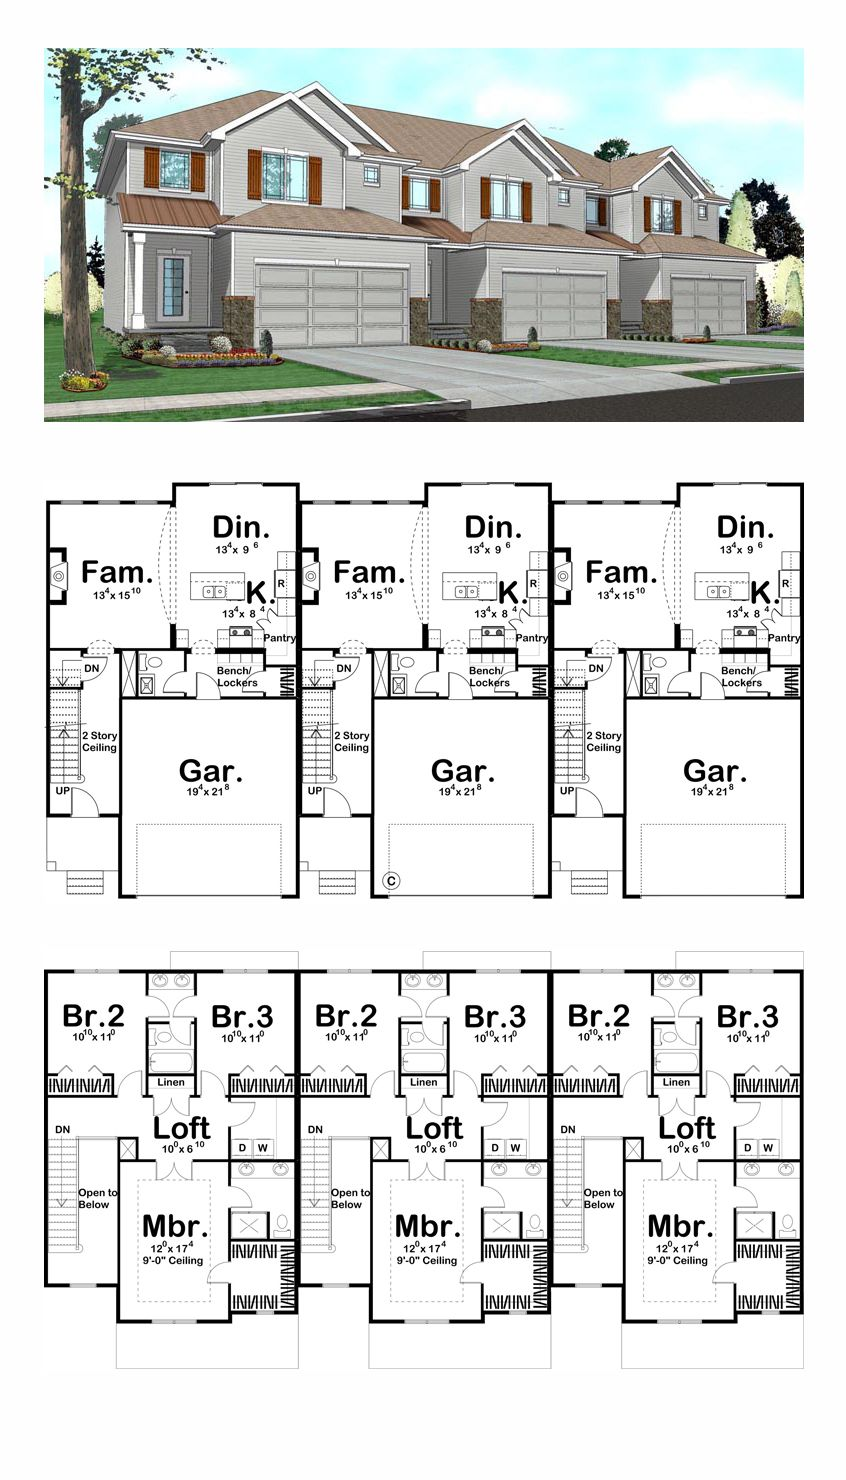 Three unit triplex plan 41141 total living area 4935 sq for 4 unit townhouse plans